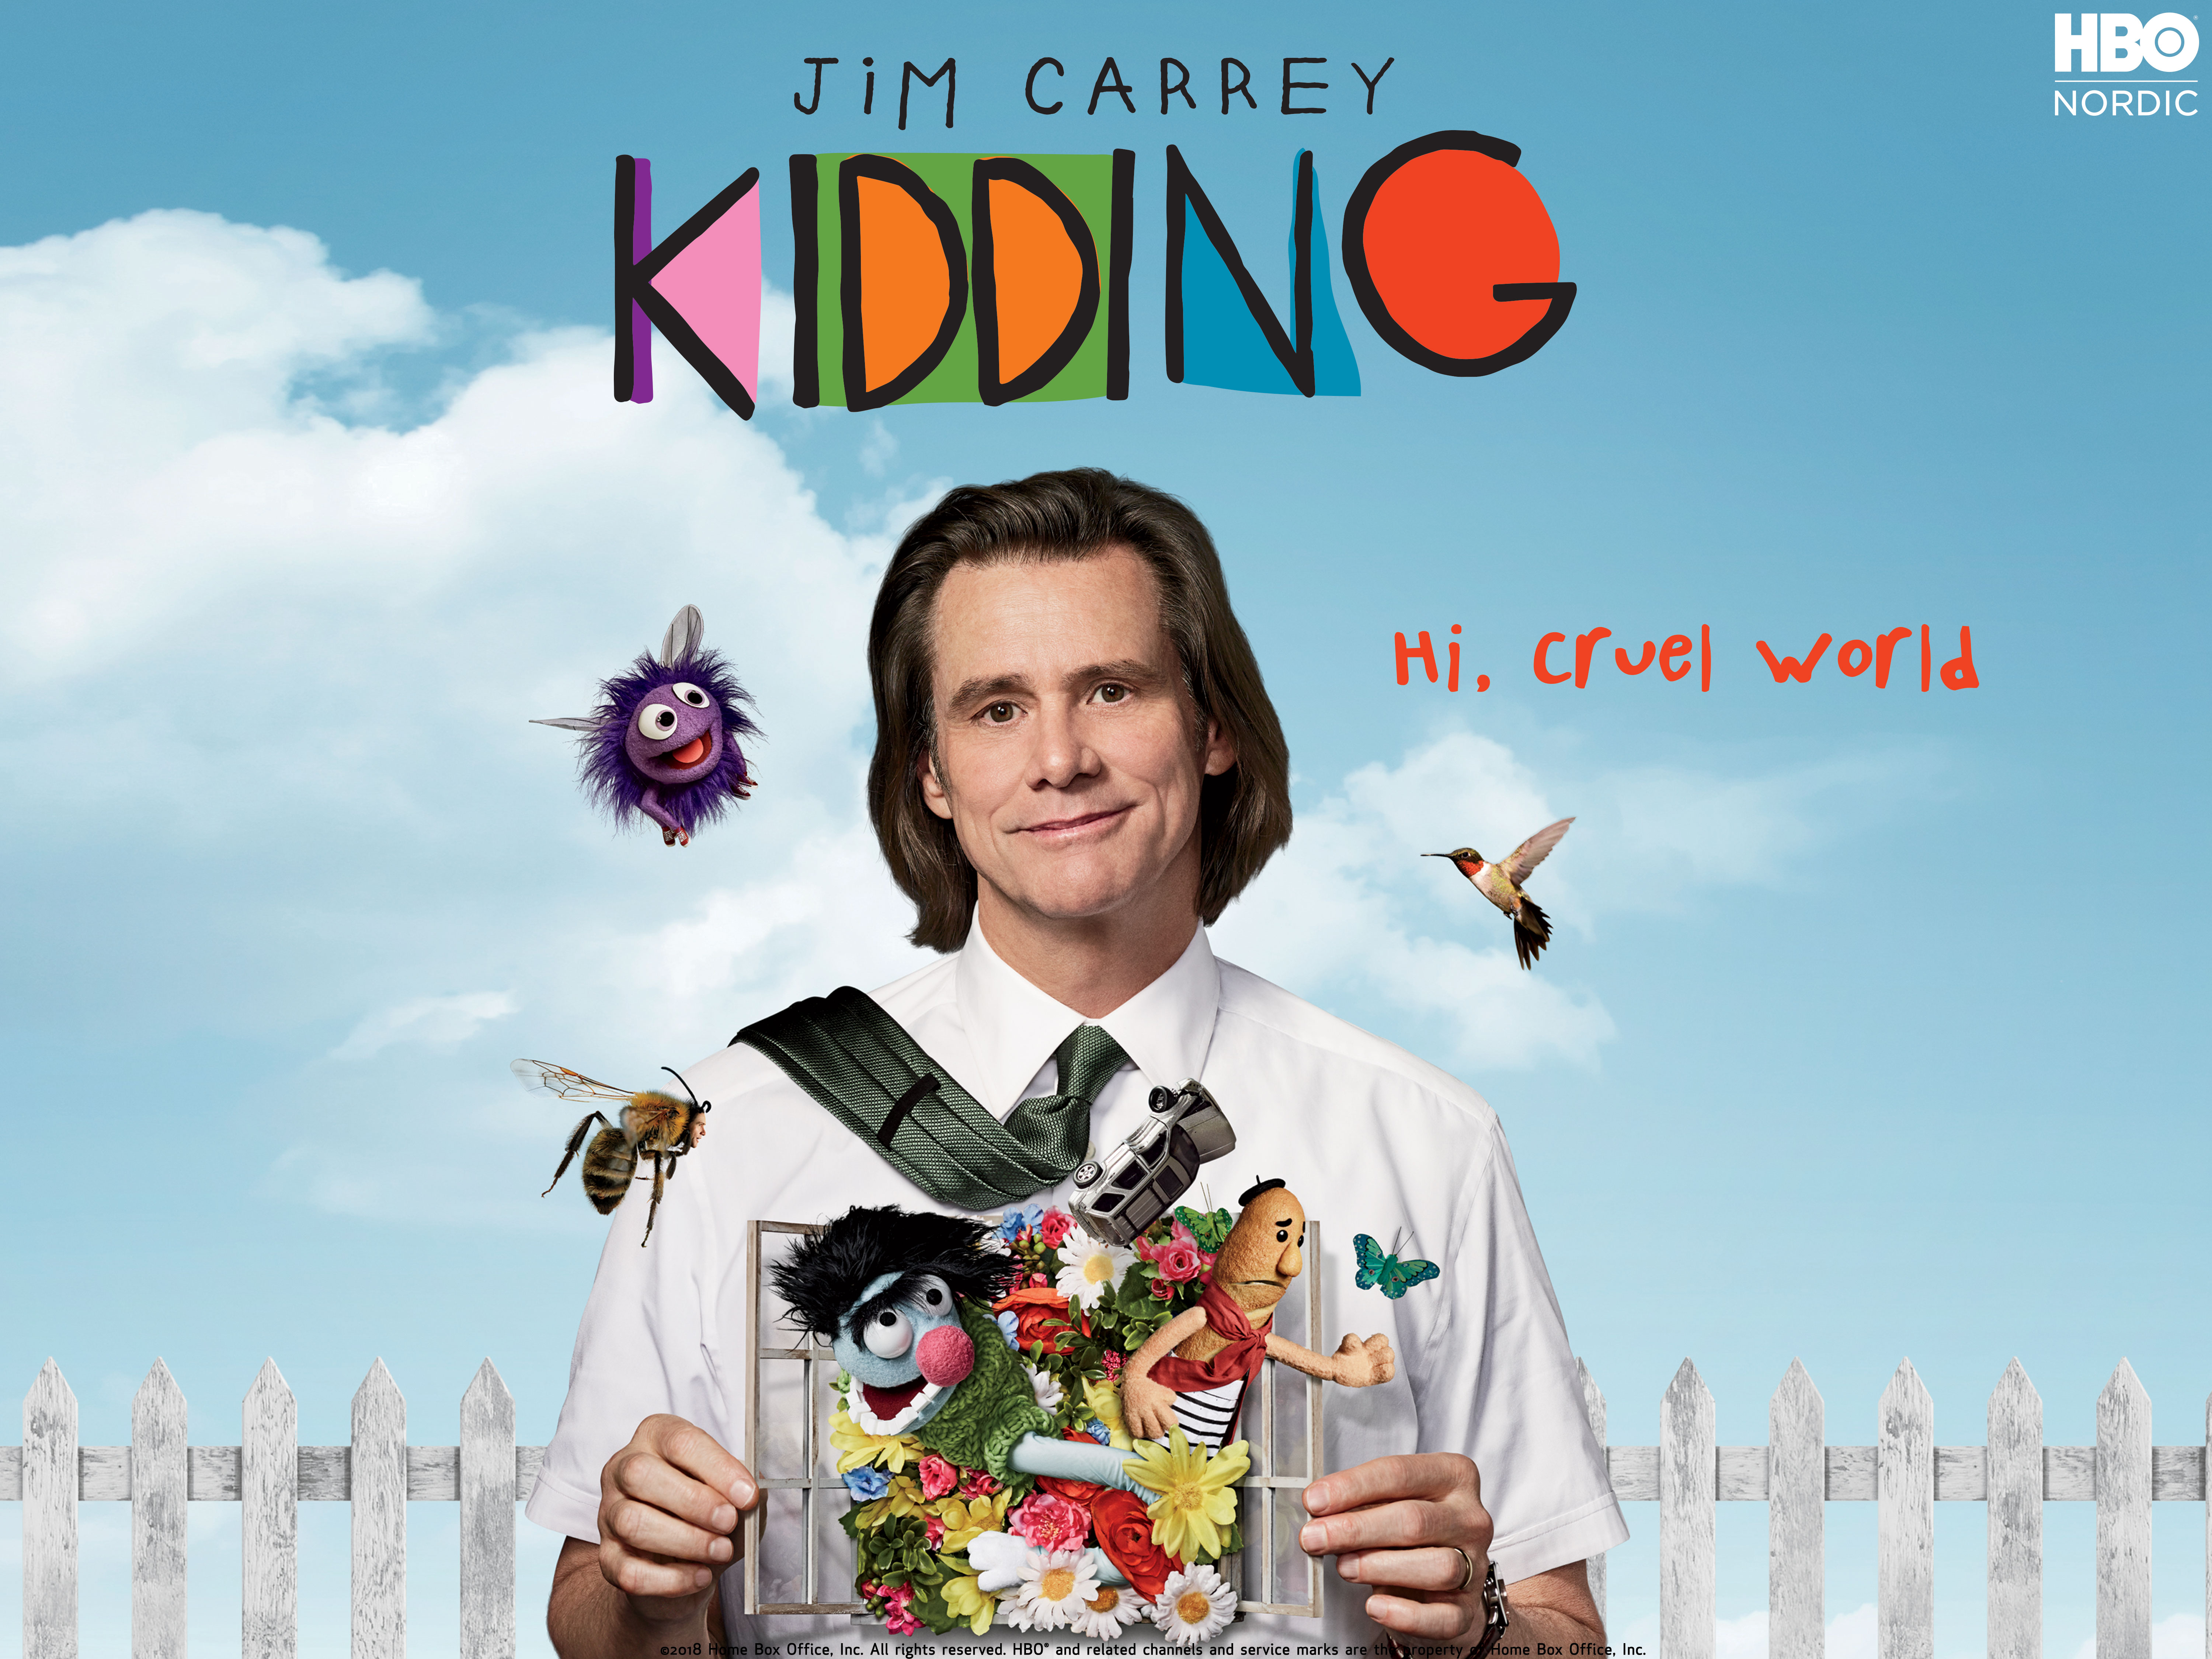 KiddingJimCarrey